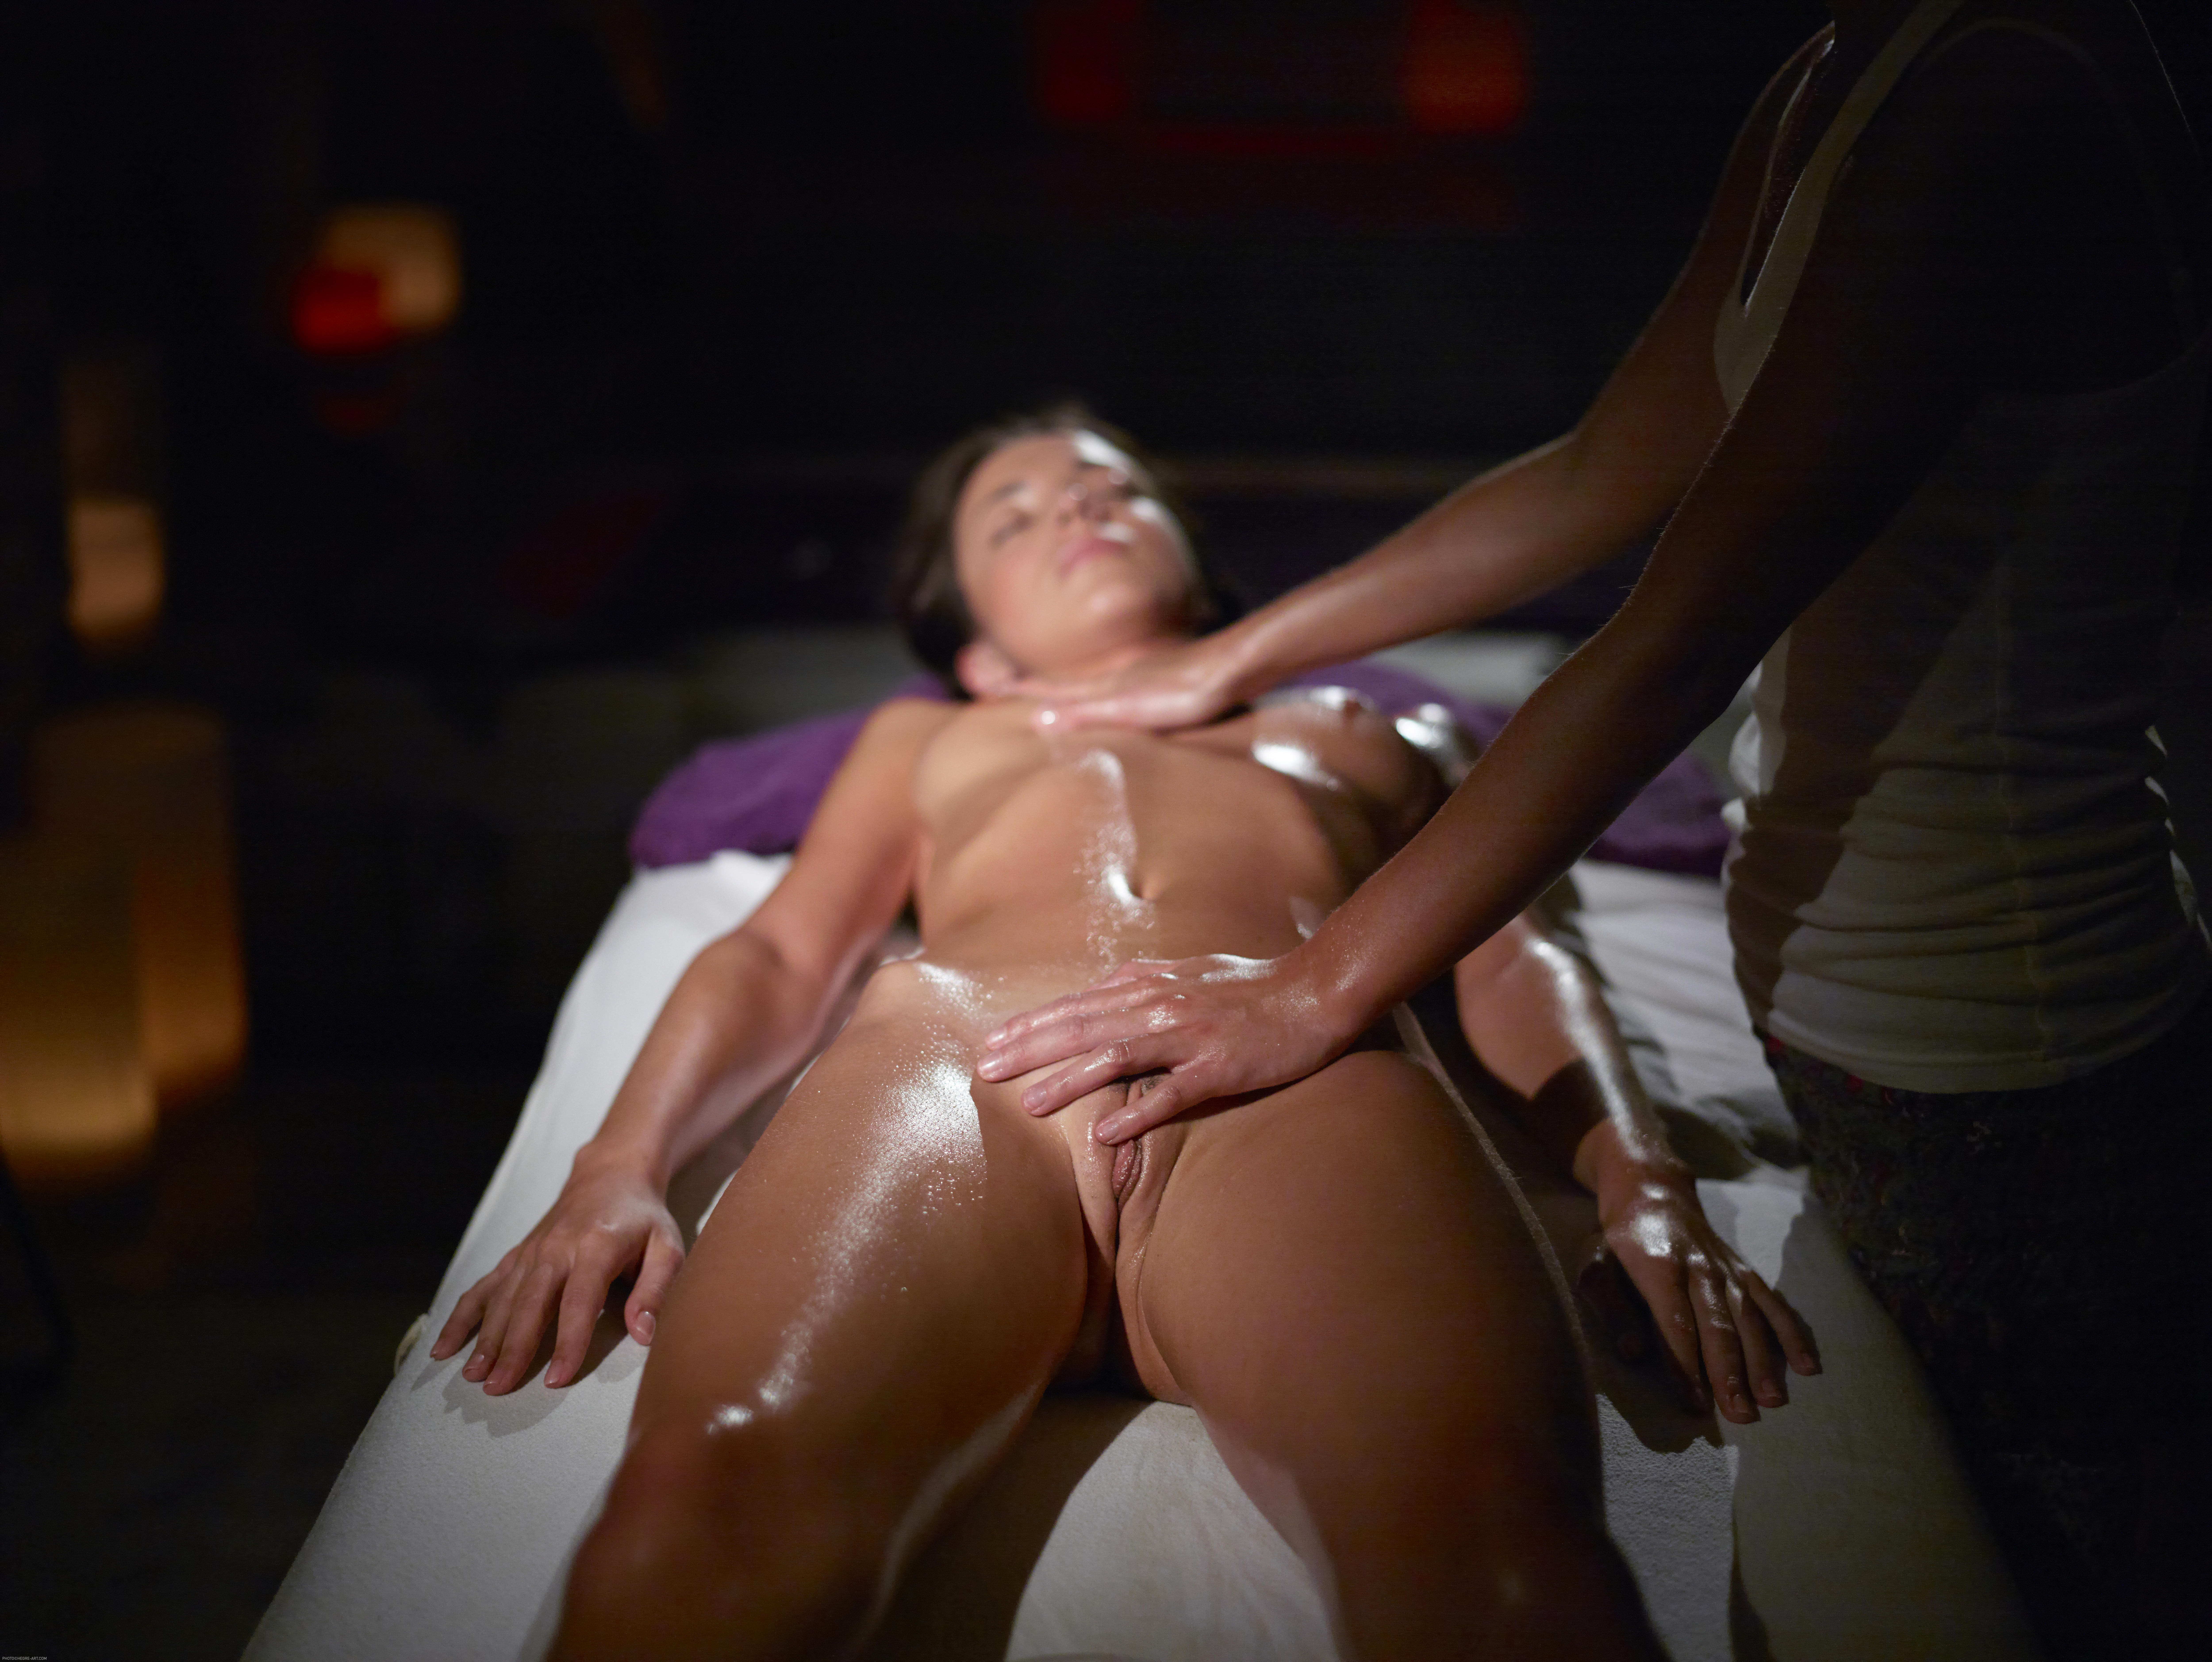 byrå massage sex